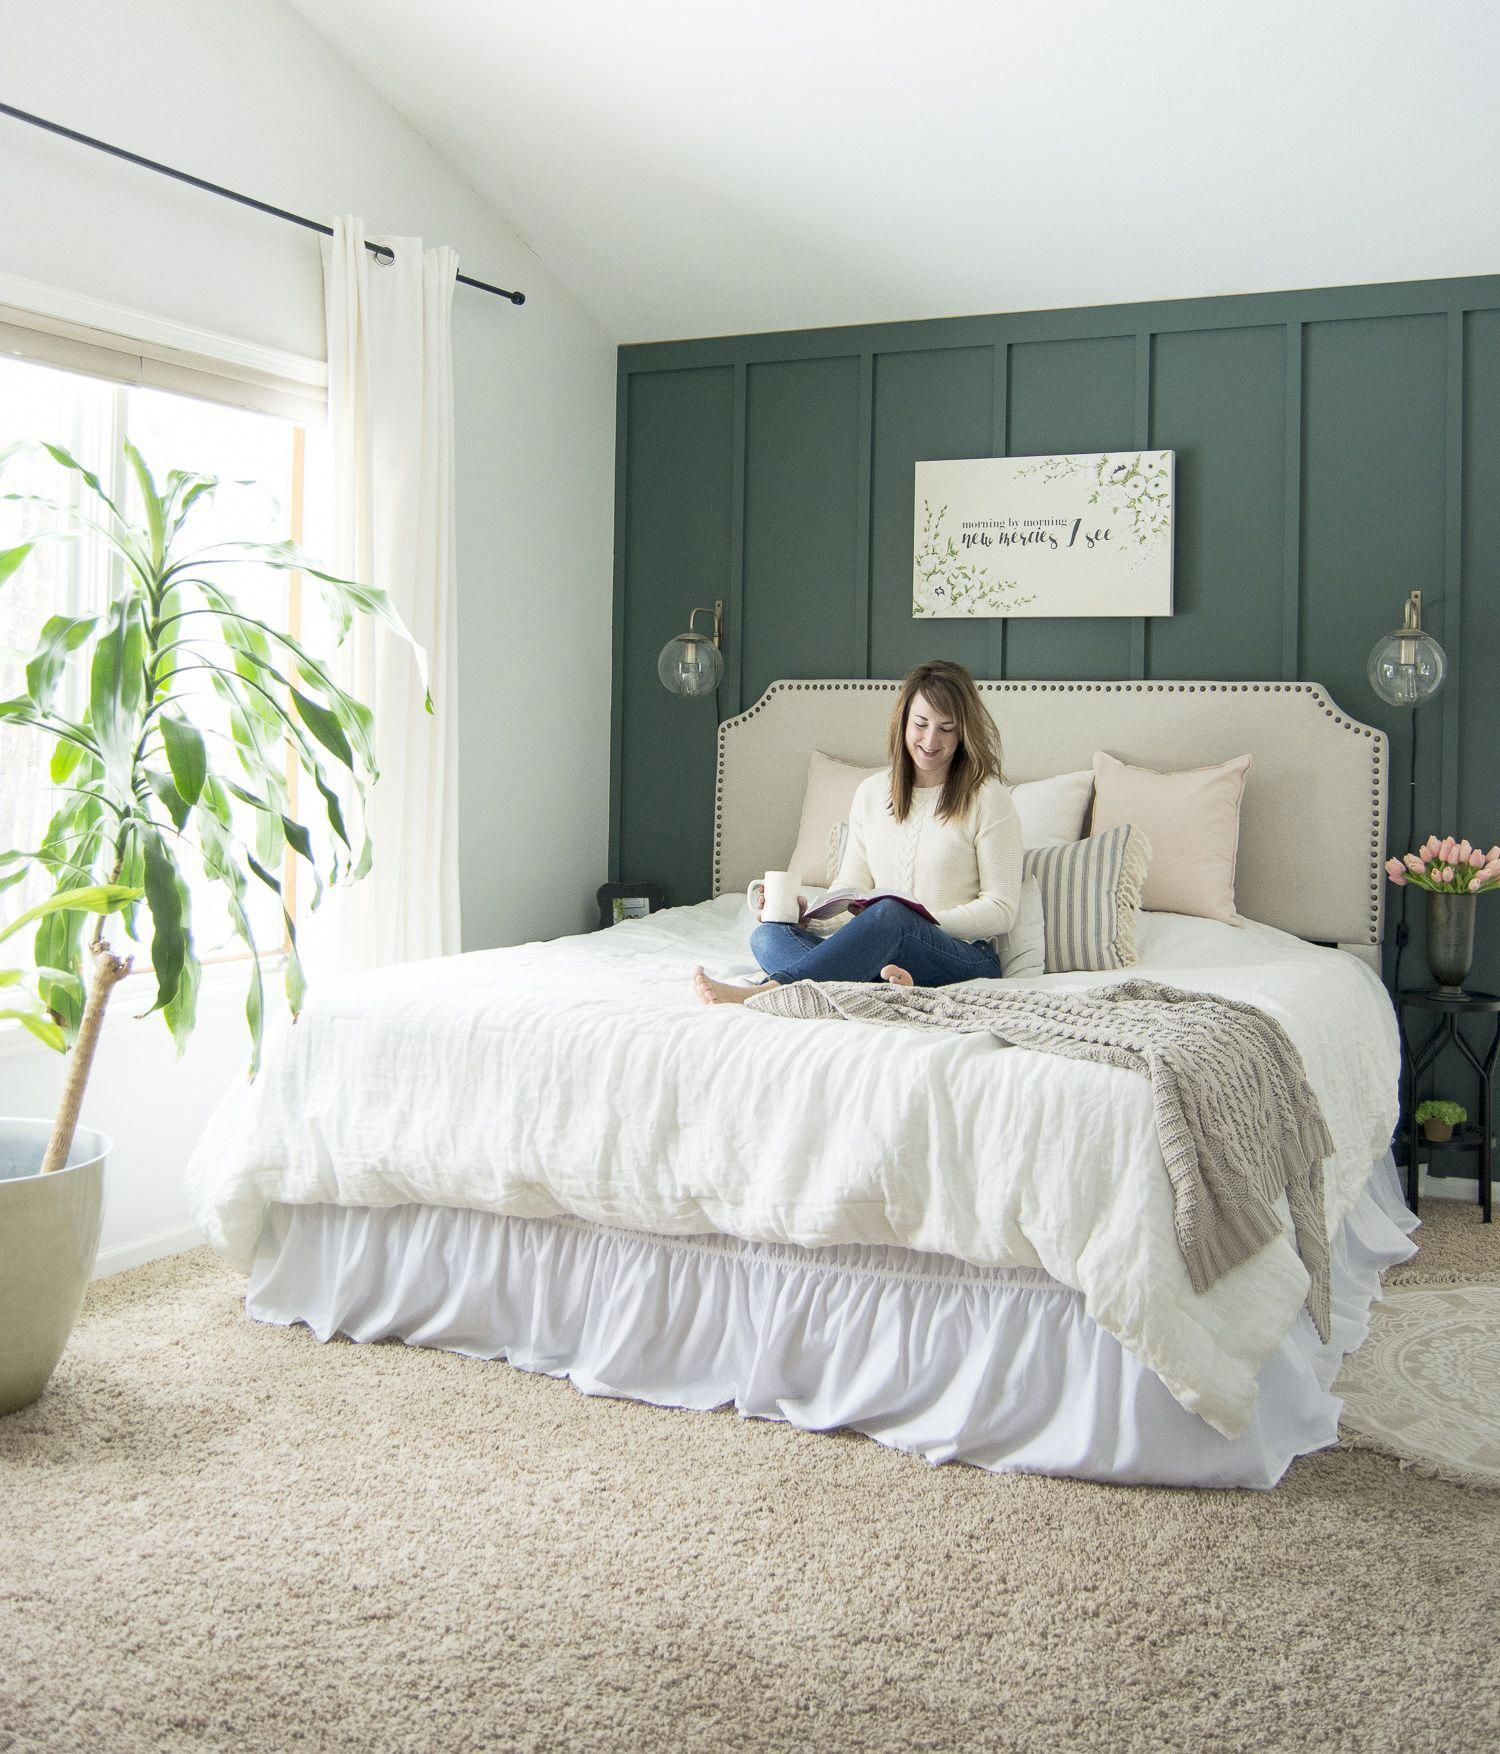 Do you love a combination of modern, cottage, and farmhouse design styles? Learn the key elements that make a simple modern farmhouse bedroom today! #fromhousetohaven #modernfarmhousebedroom #modernfarmhouse #bedroomdecor #bedrooms